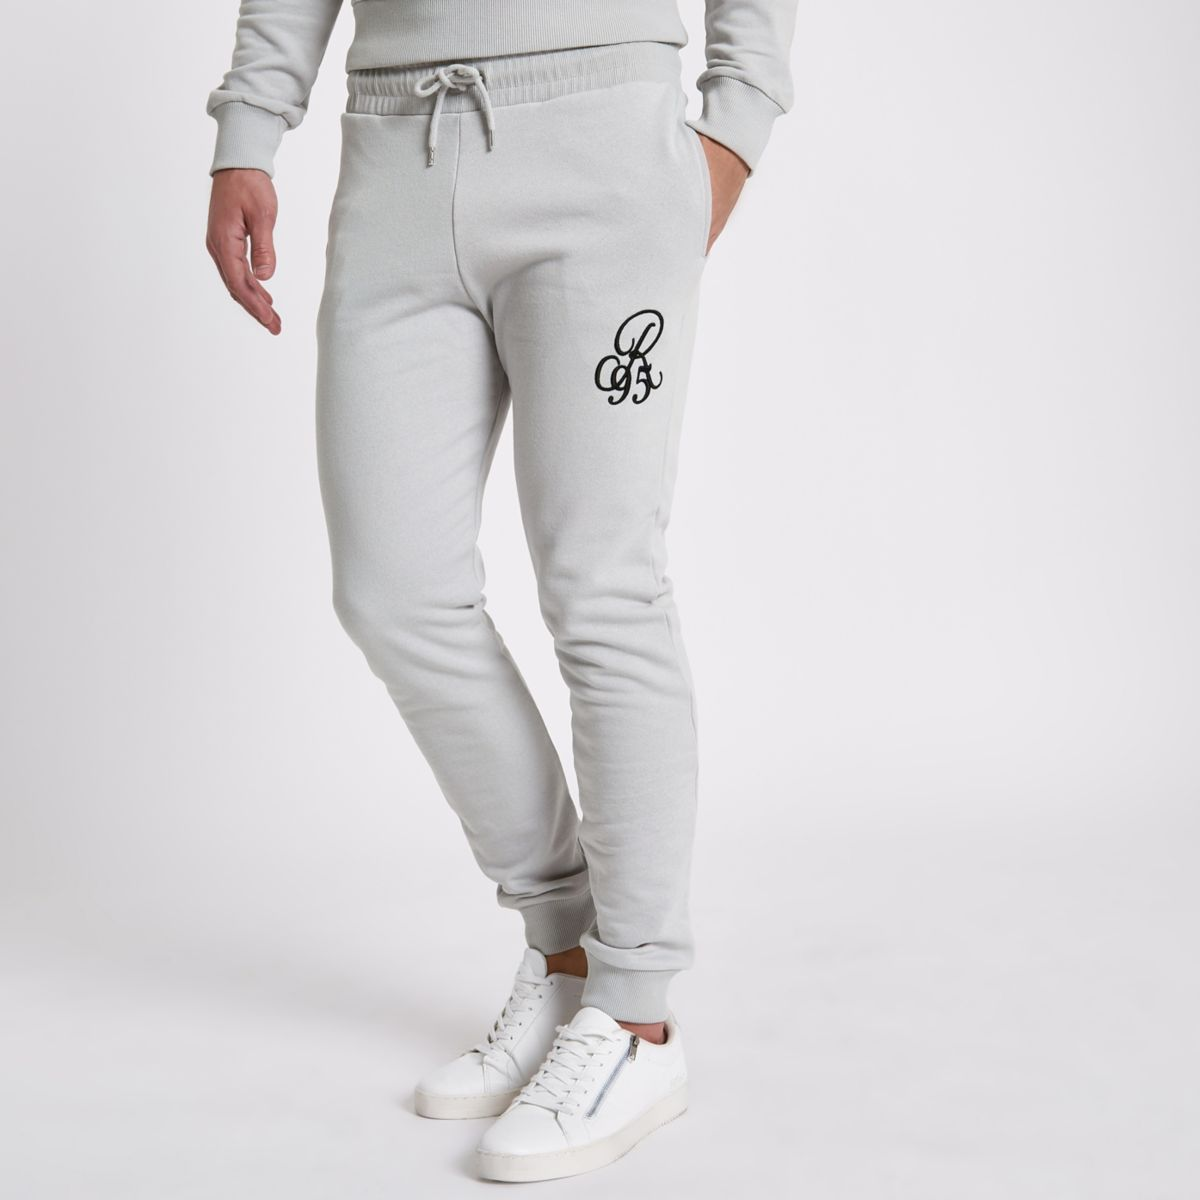 Grey slim fit R95 embroidered joggers